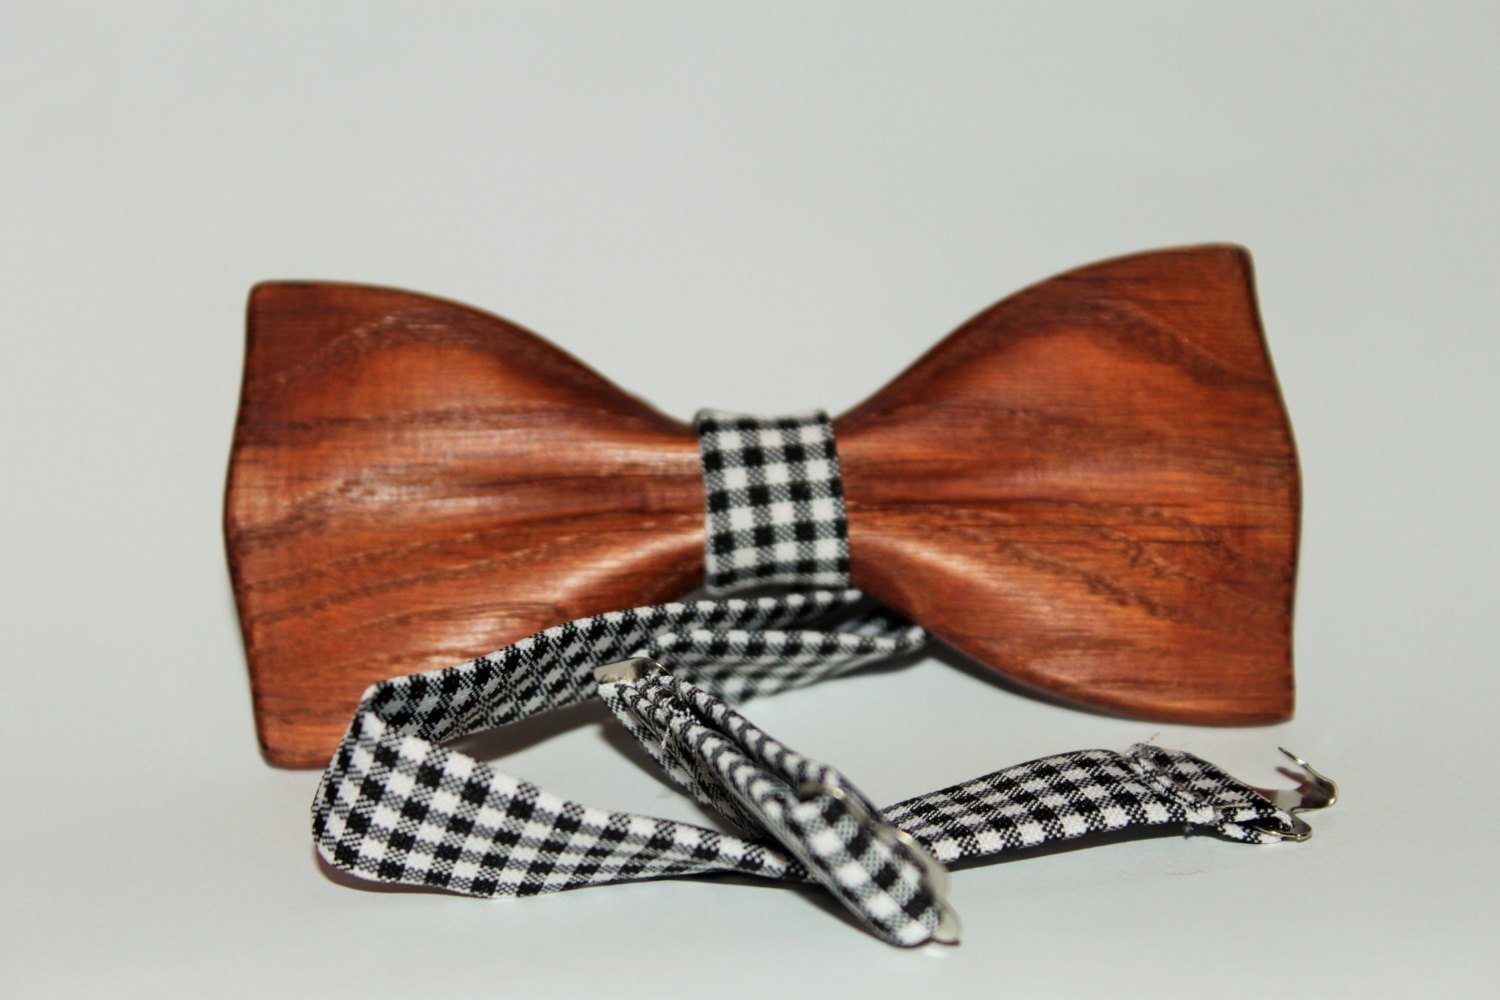 Bow tie made of a solid piece of oak wood